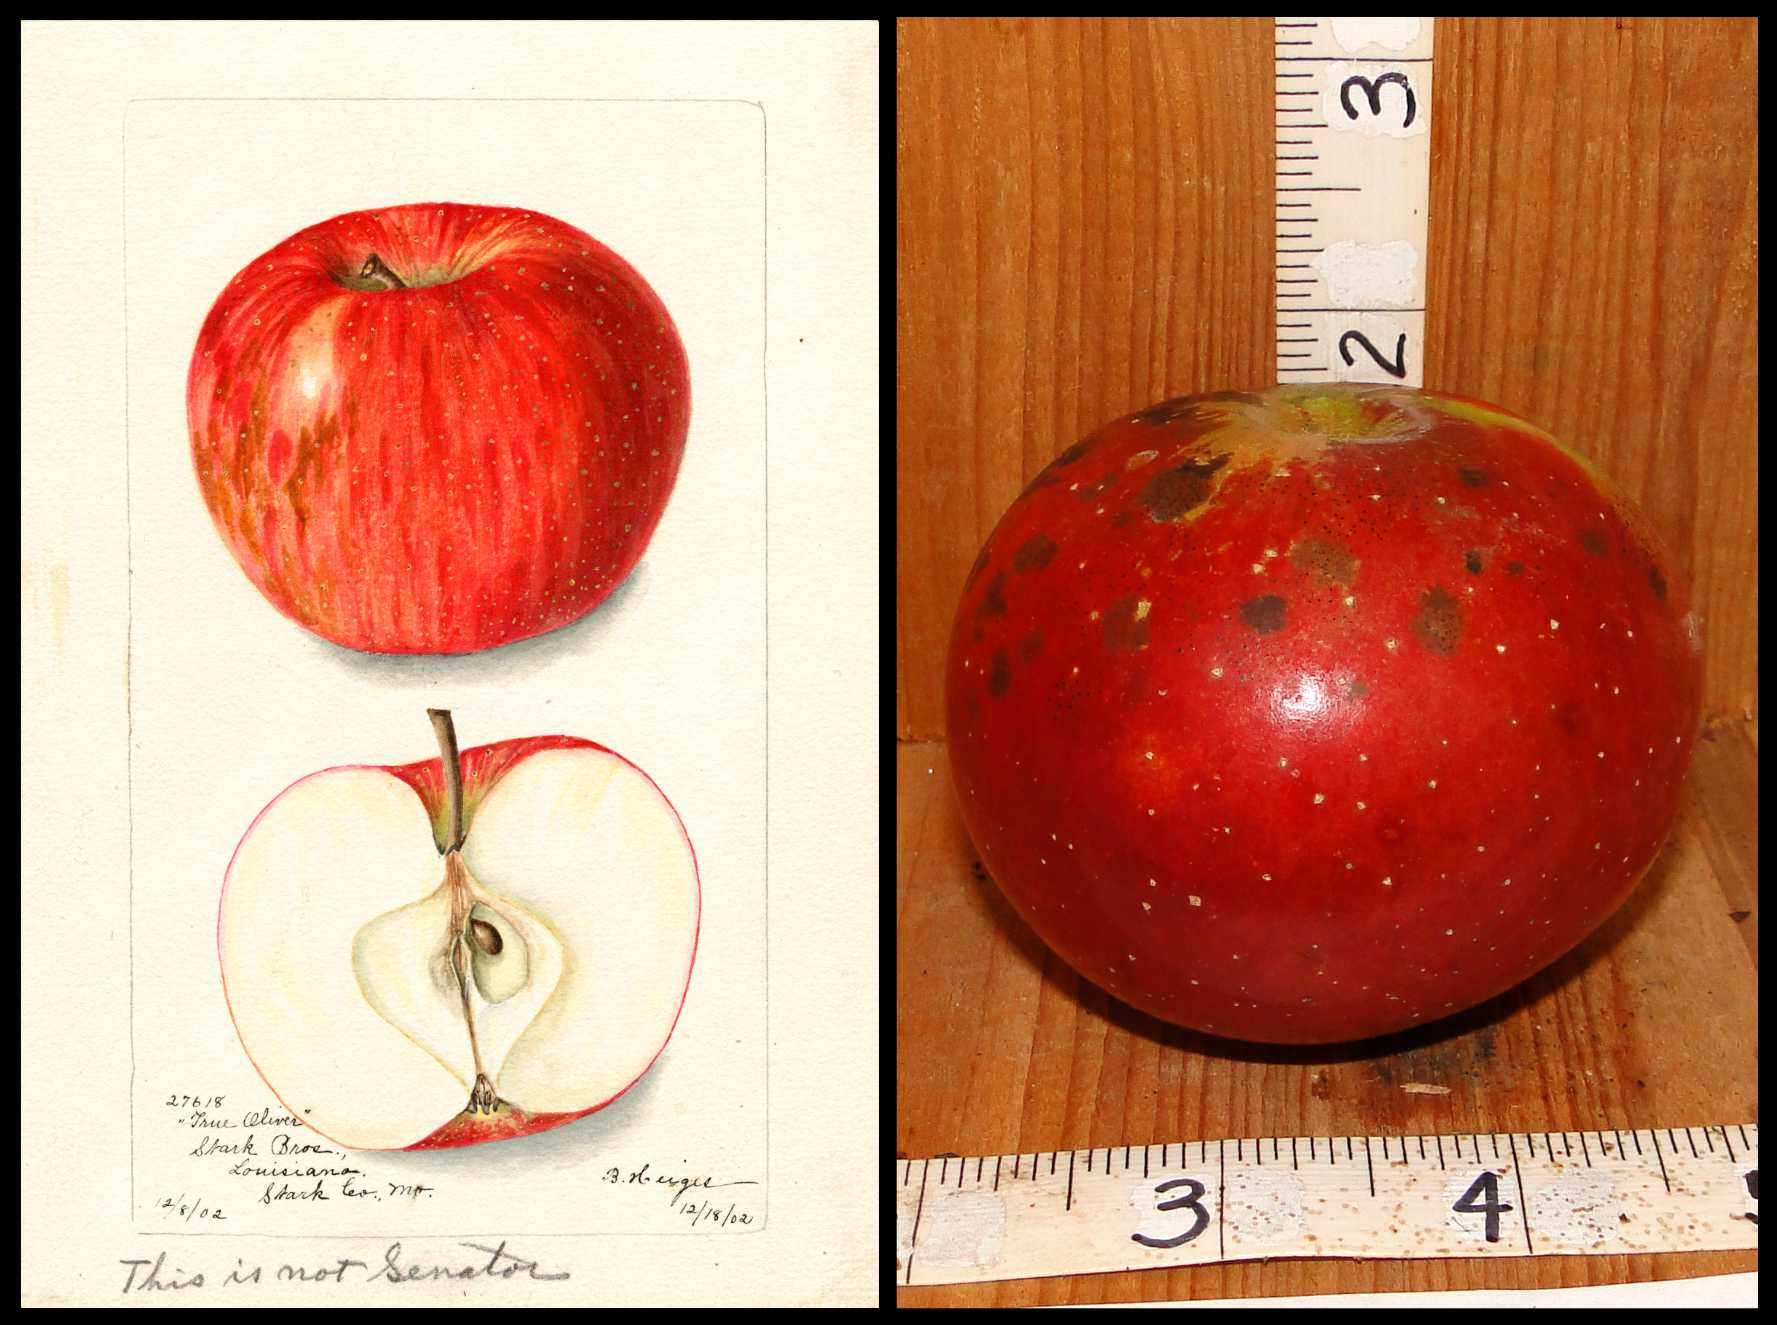 red apple with small white dots